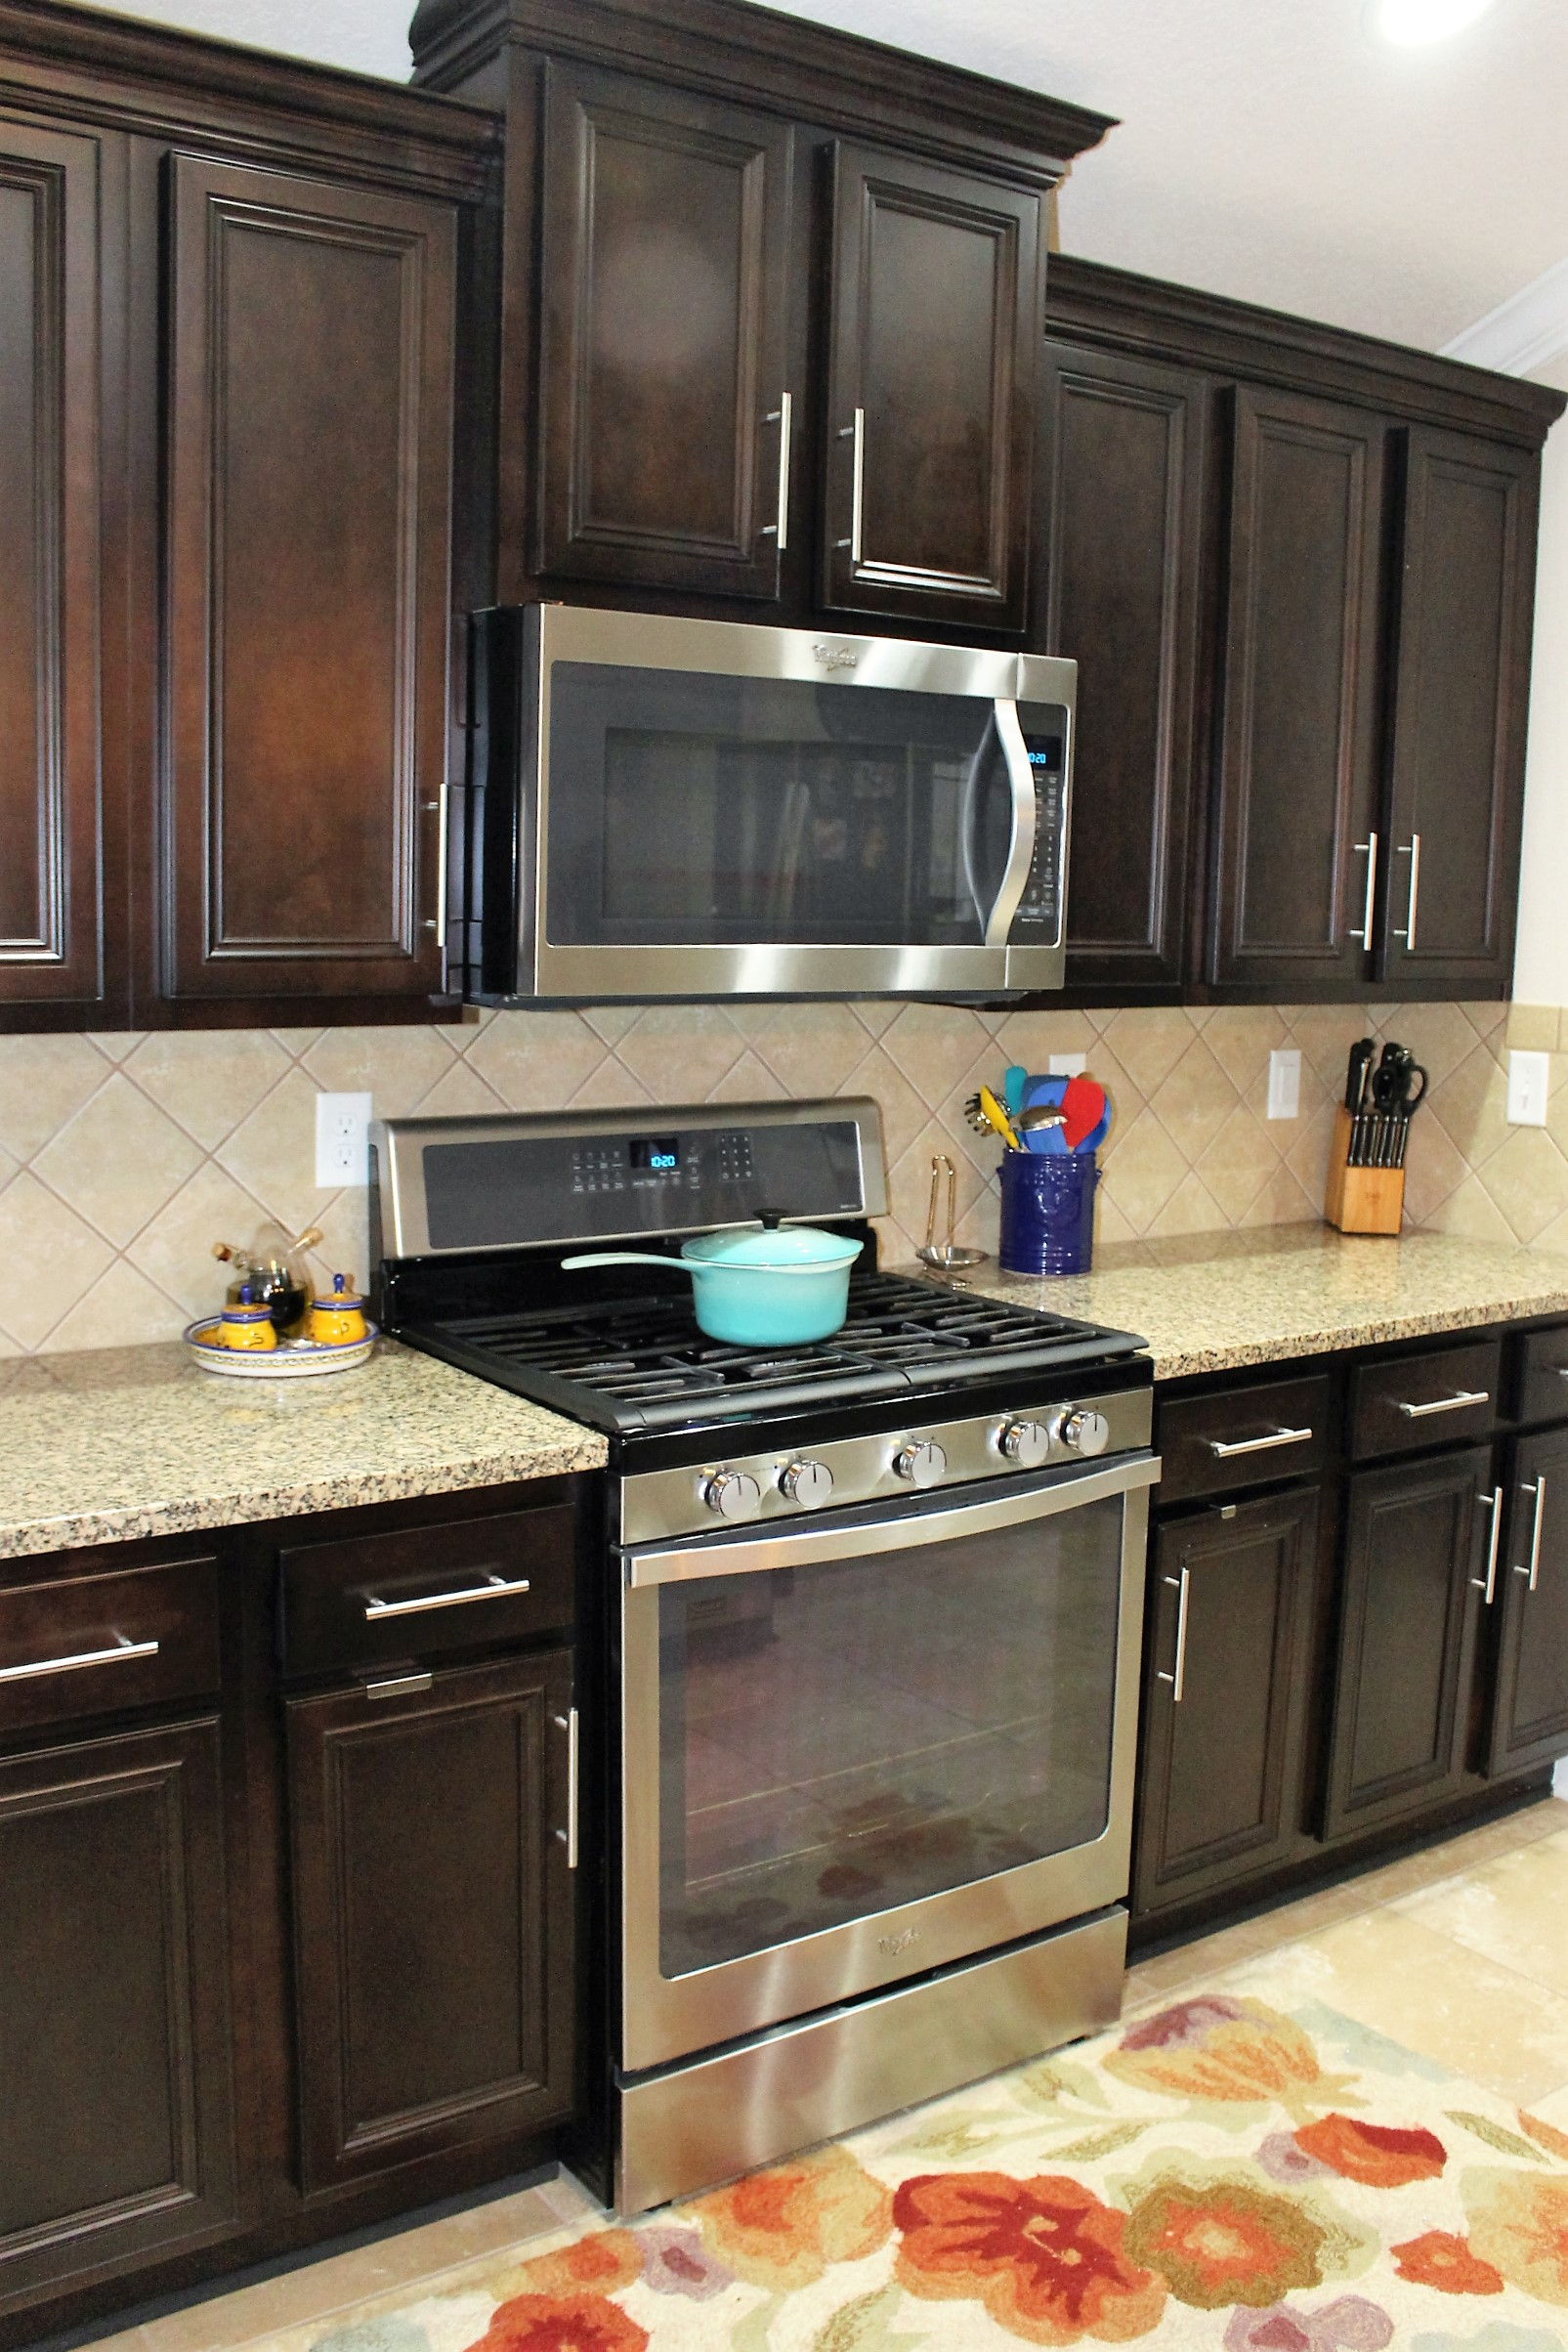 Spring cleaning kitchen cabinets - House by the Preserve